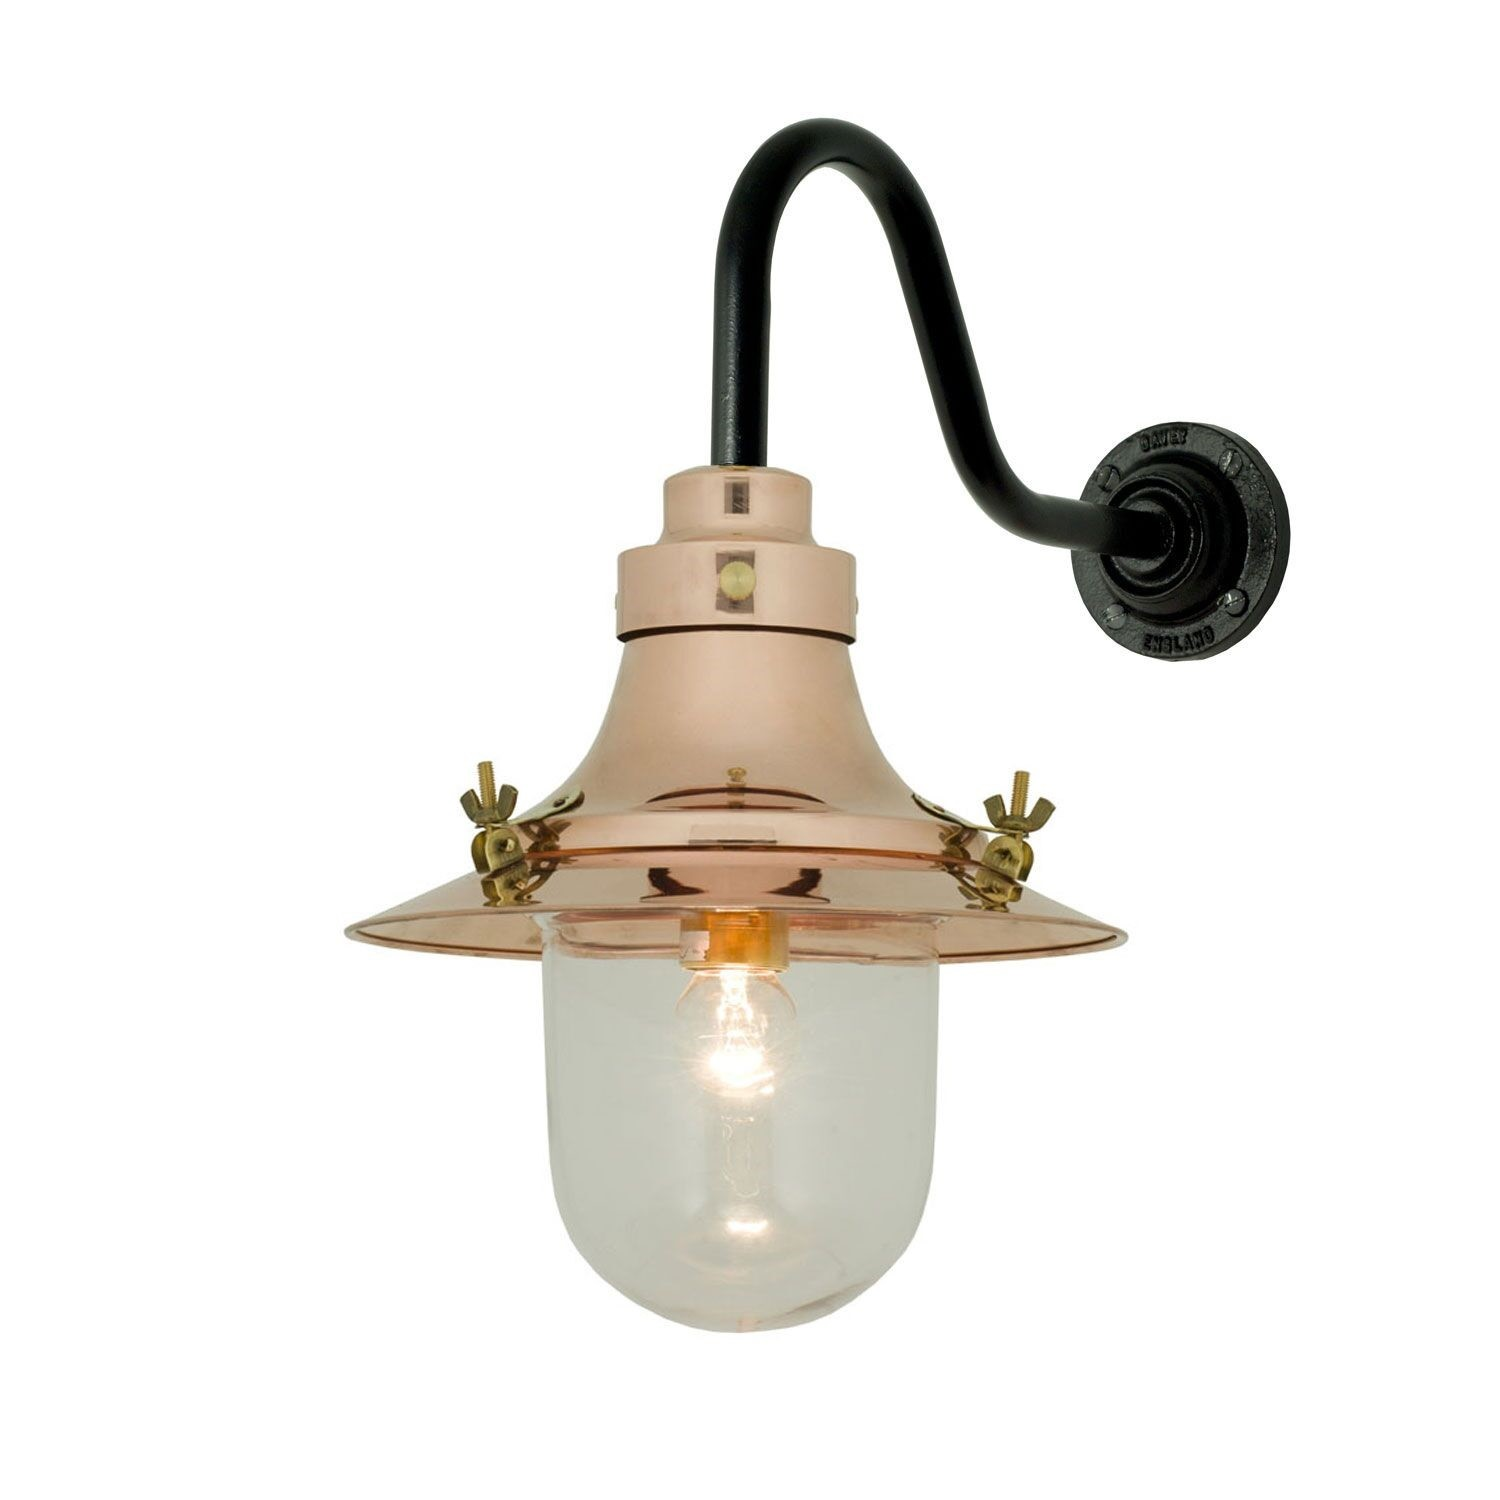 Ship's Small Decklight Wall Light 7125 Polish Copper, Clear Glass